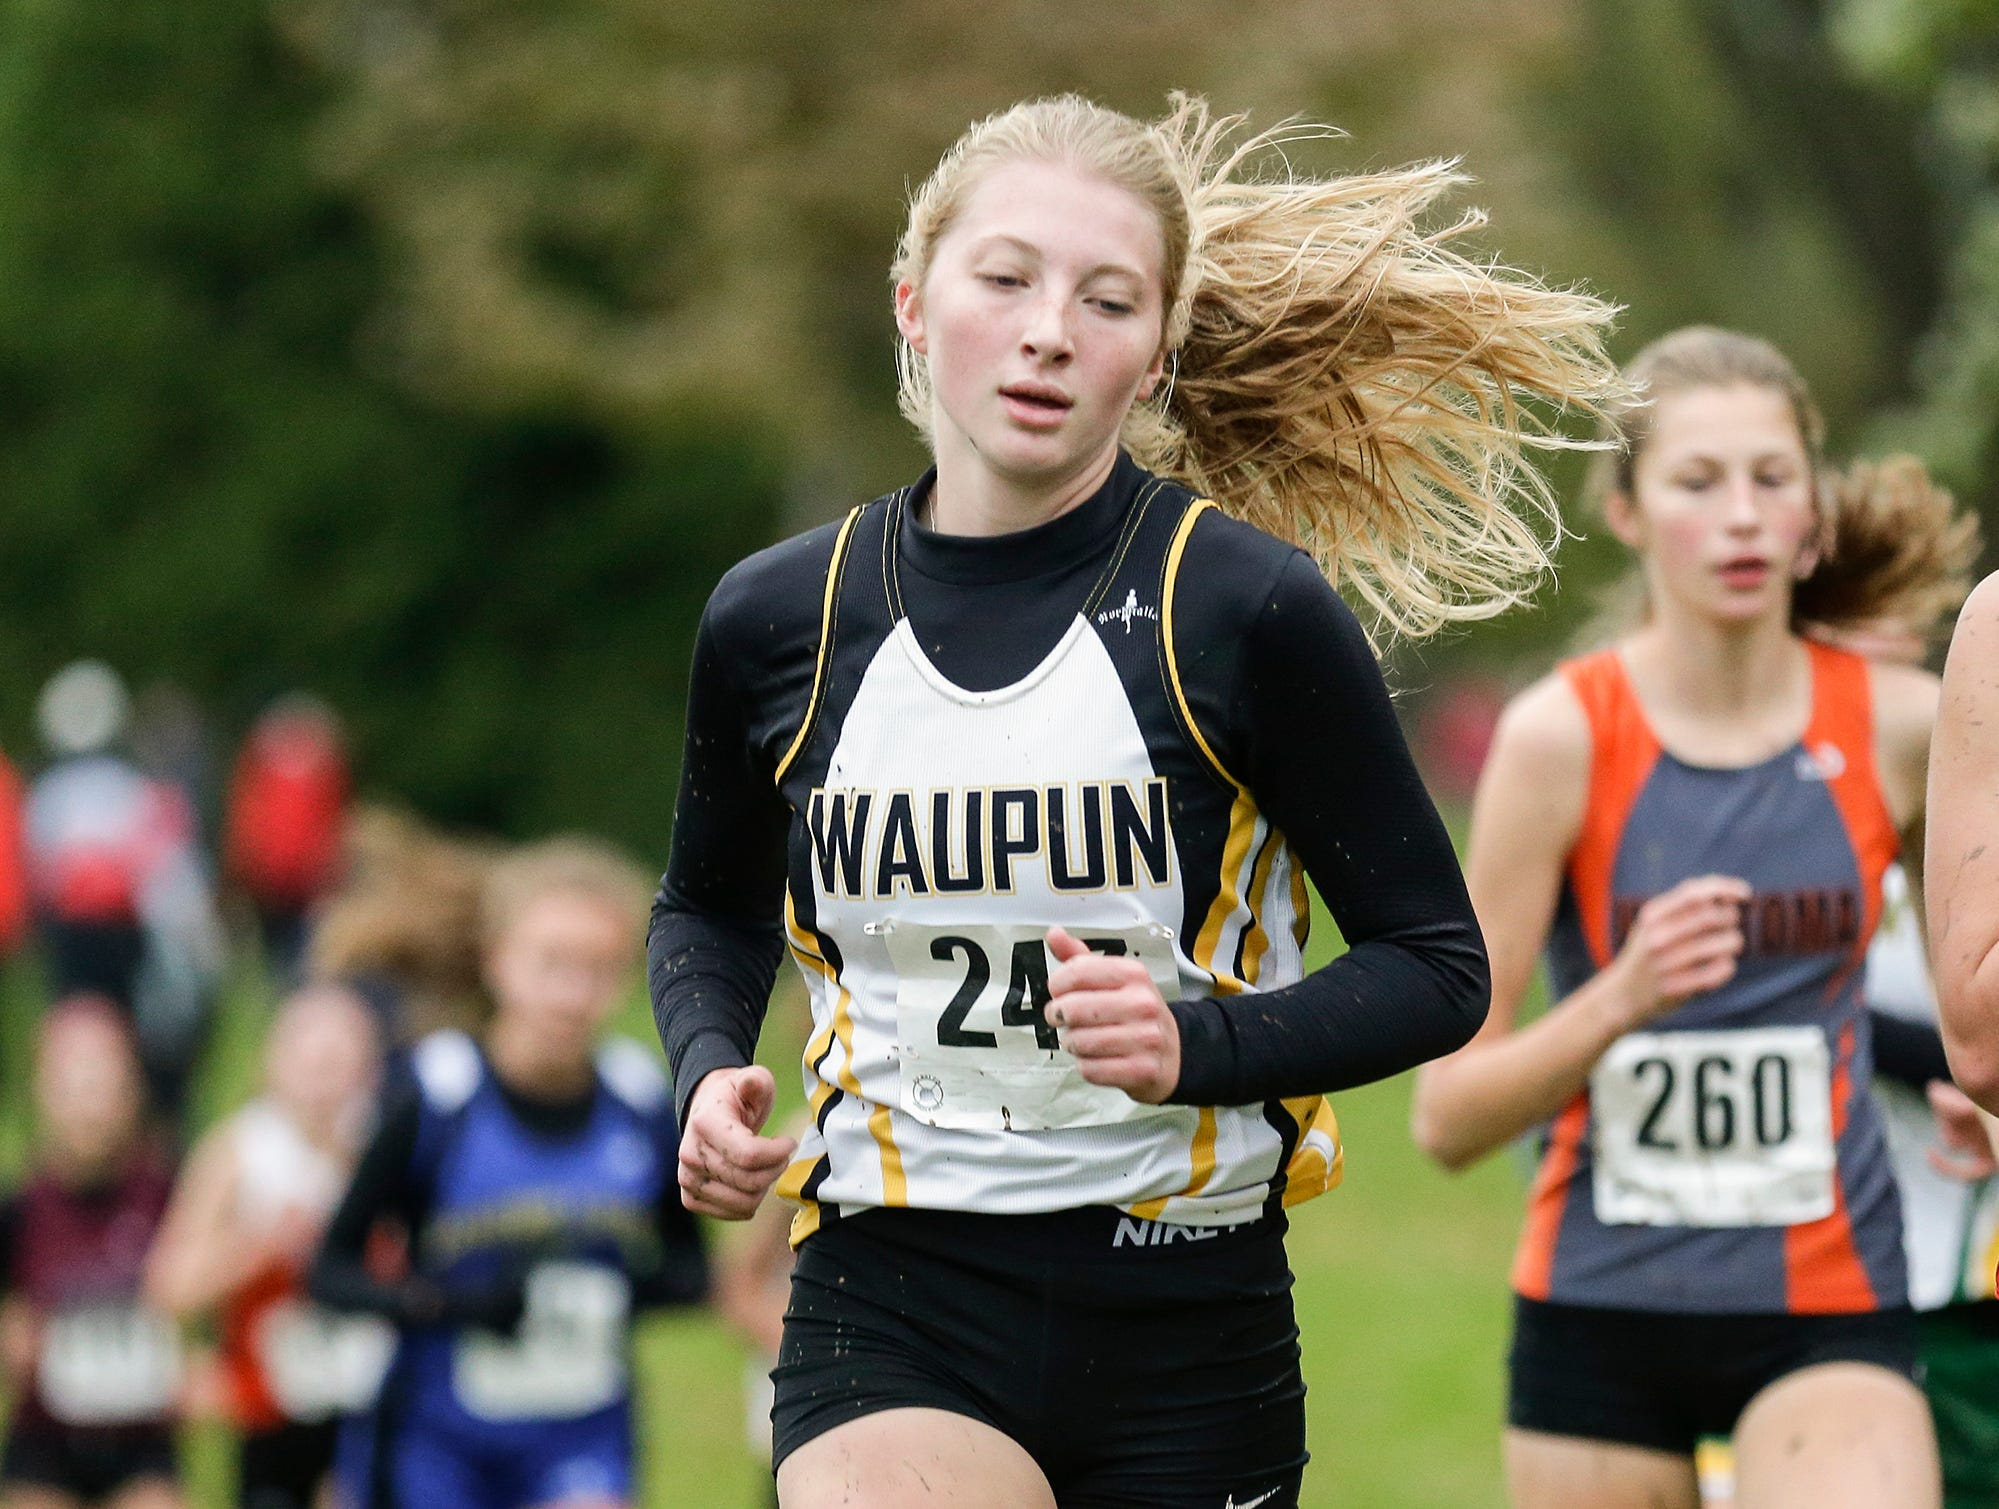 Waupun High School's Peyton McGinnis runs in the WIAA Division two Mayville sectional cross country meet at the Mayville golf course Friday, October 19, 2018. Doug Raflik/USA TODAY NETWORK-Wisconsin